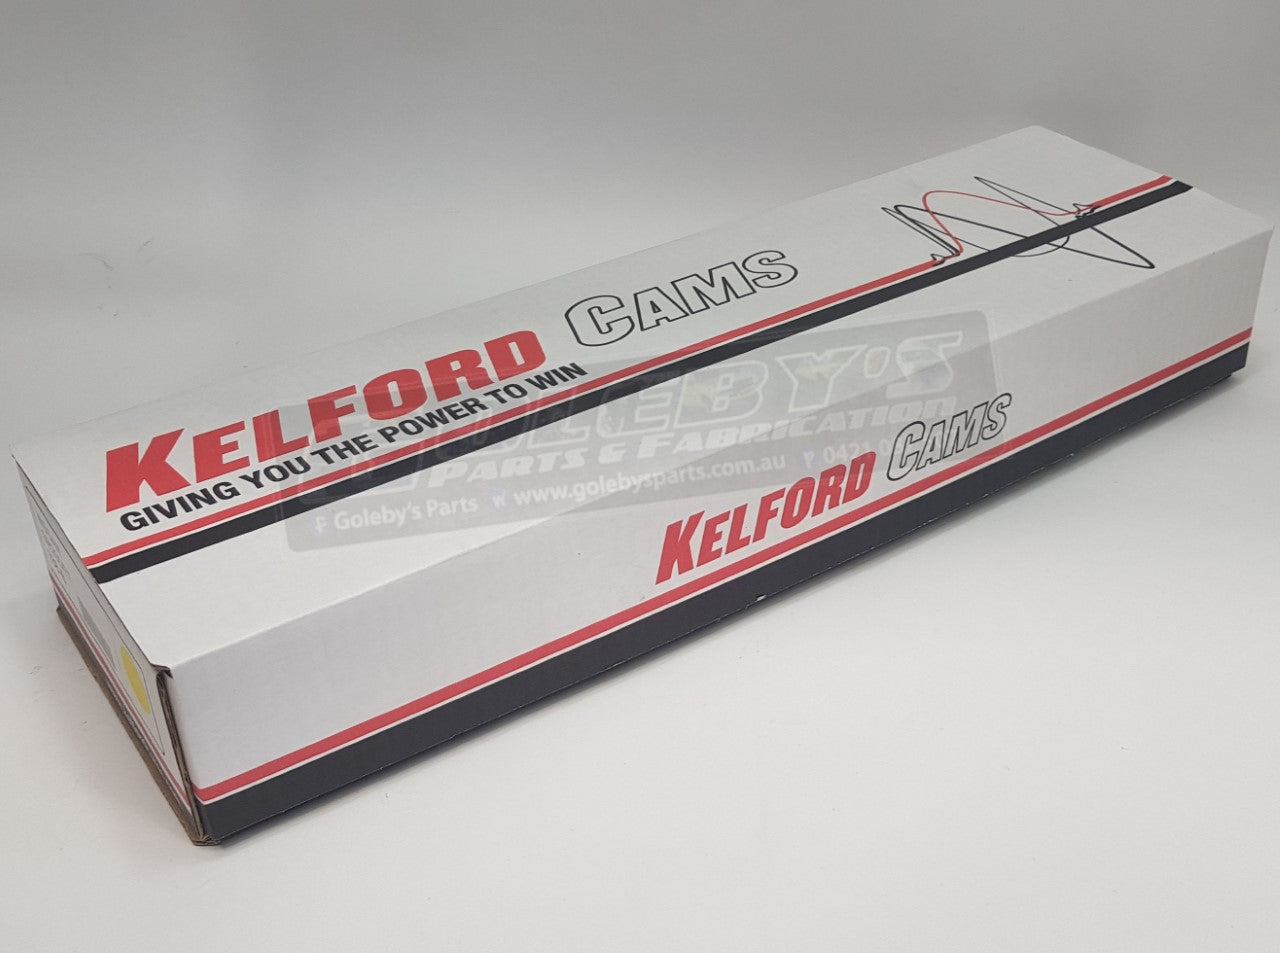 Kelford Cams EVO 4-7 4G63 Solid Lifter Conversion